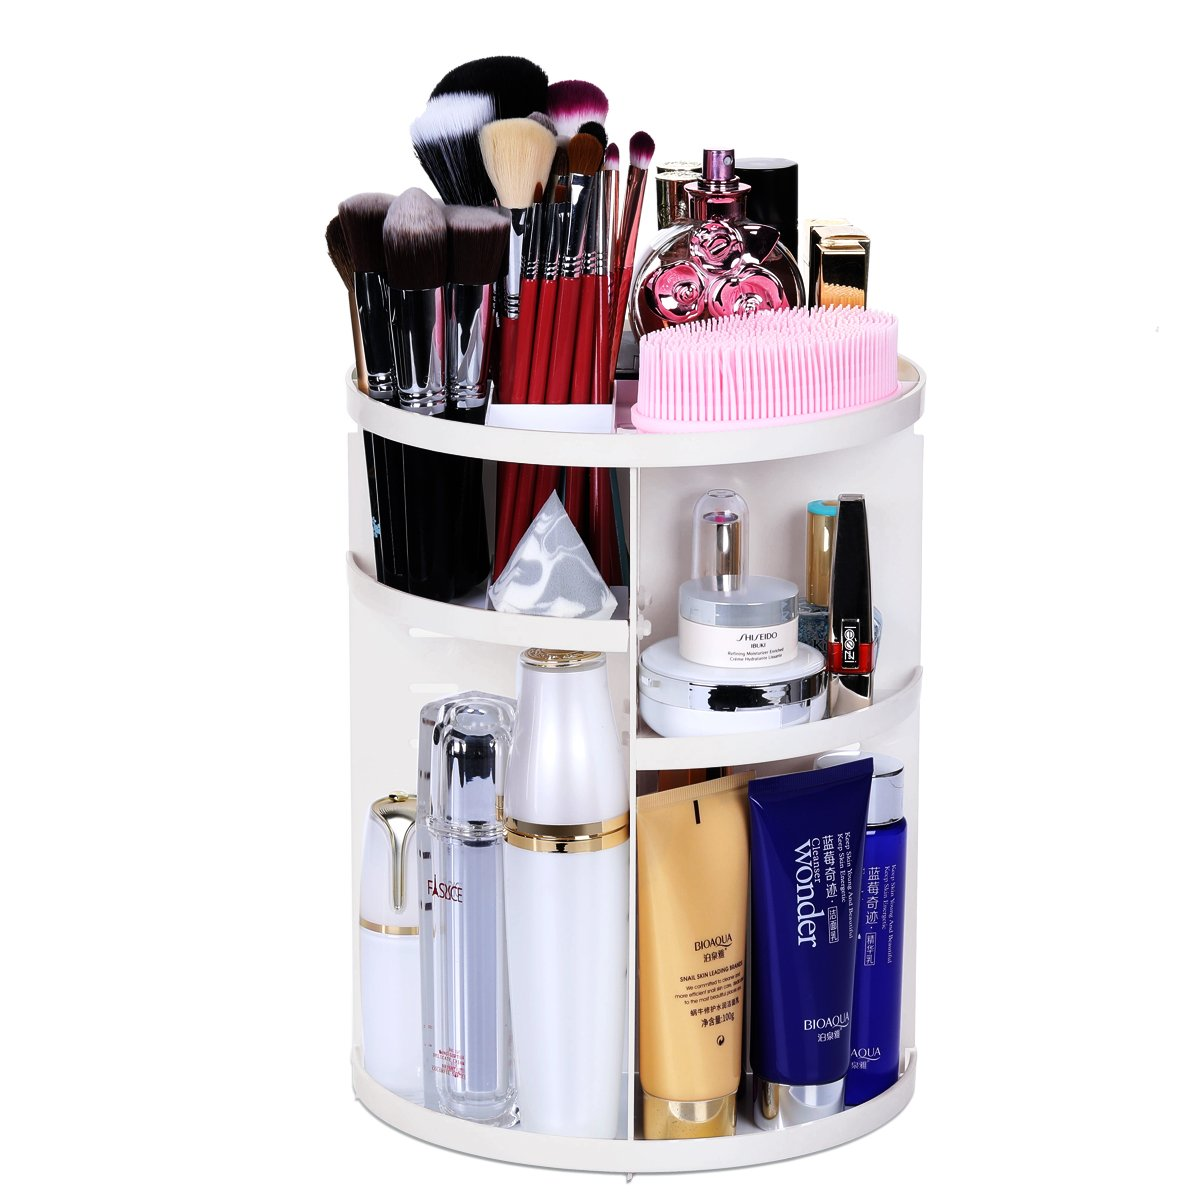 Aspior Makeup Organizers Cosmetic Storage Holder 360 Degree Rotation Case Adjustable Large Capacity 7 Layers for Bathroom Countertop Make-up Brushes Skin Care Products Lipsticks Display(White)